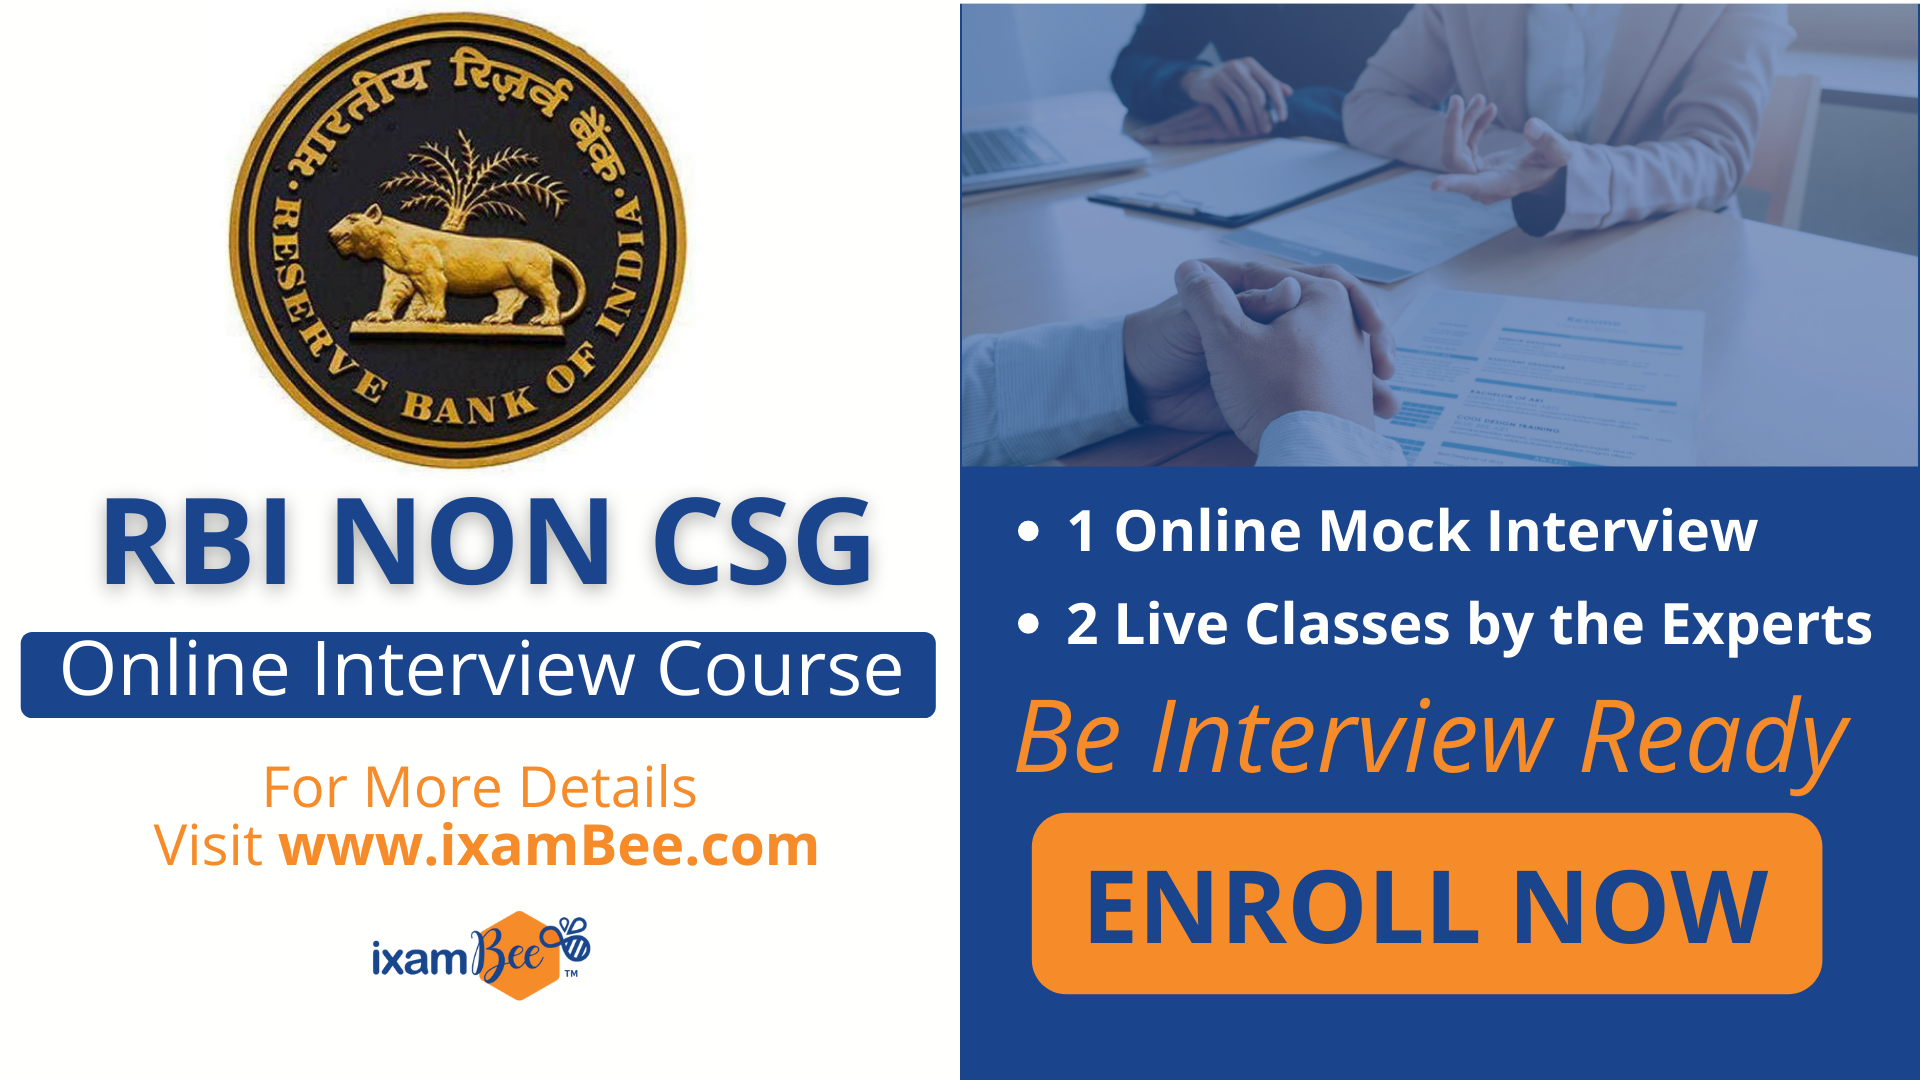 RBI Non CSG Interview Course Page